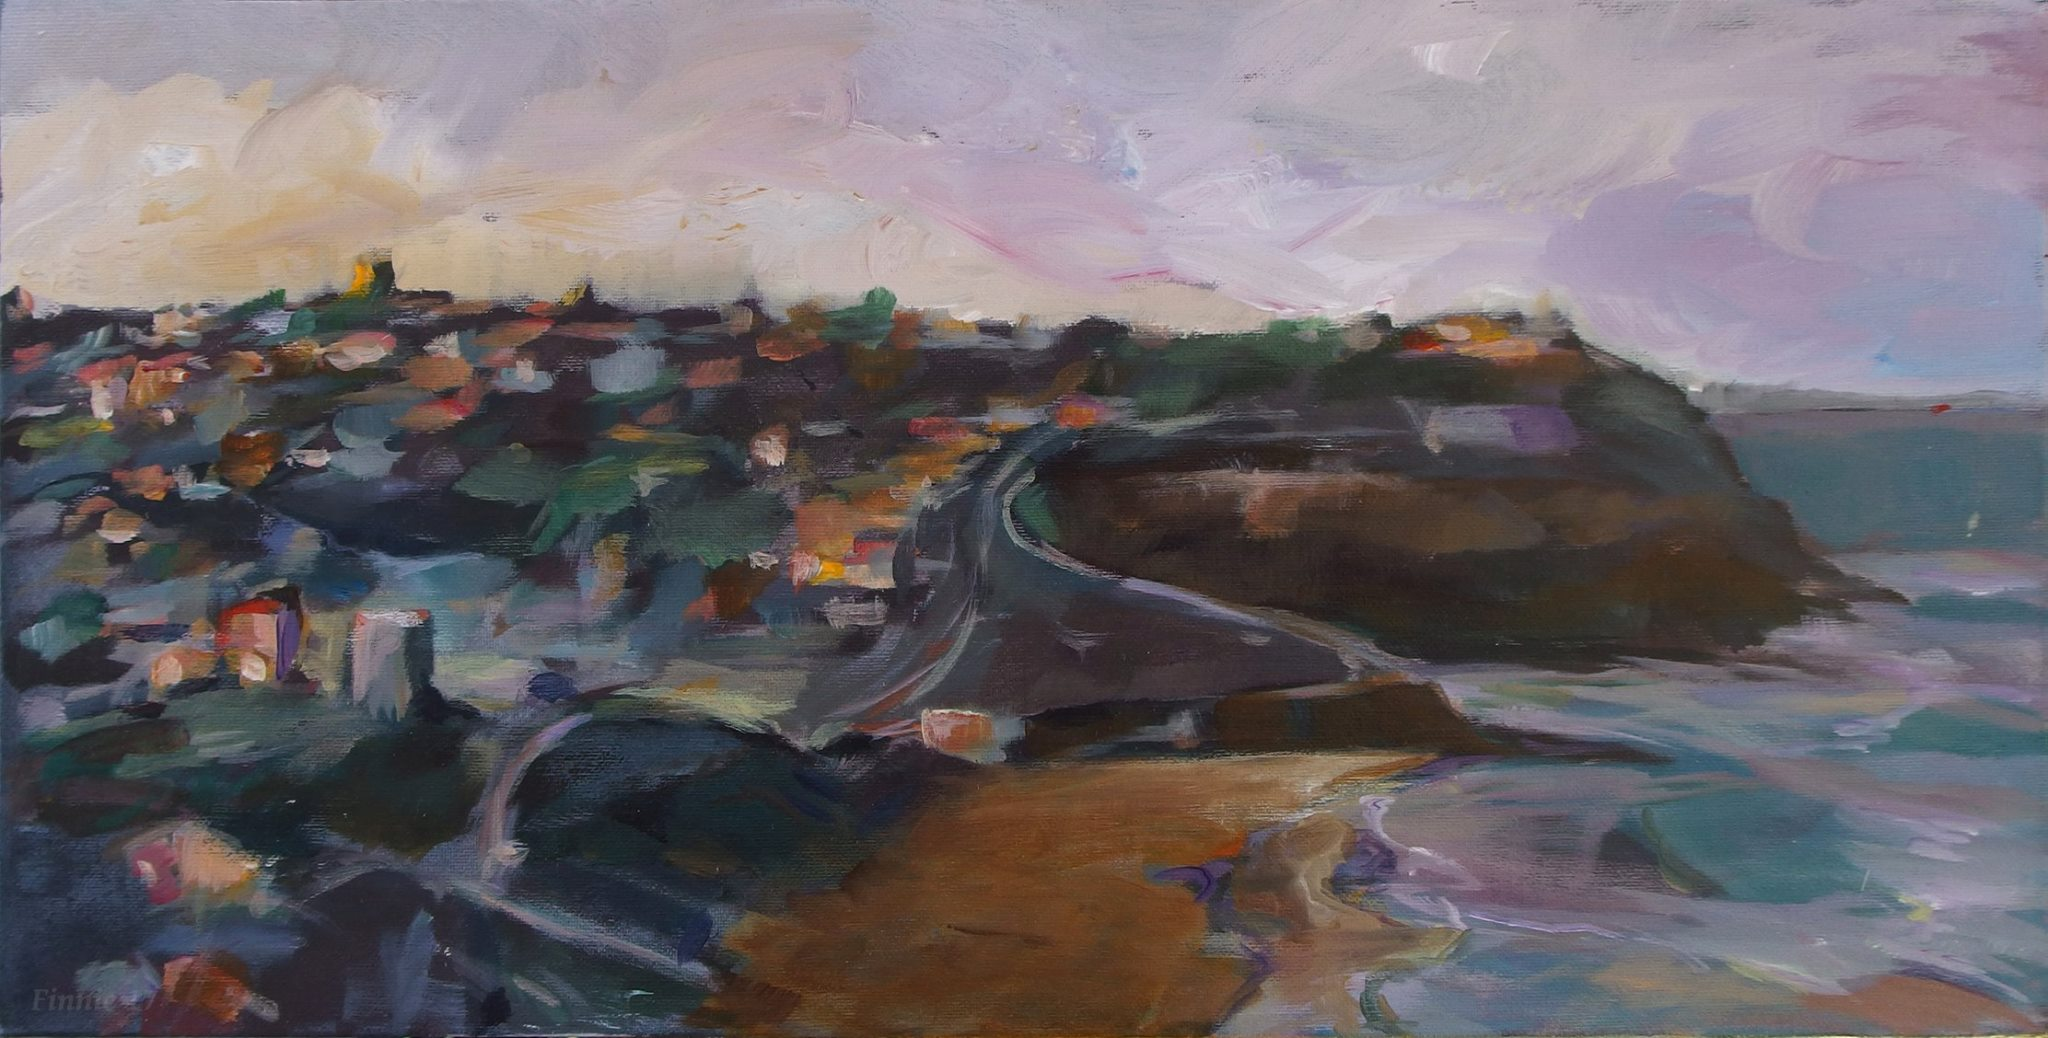 Merewether 2015, acrylic on canvas, 60 x 30 cm -